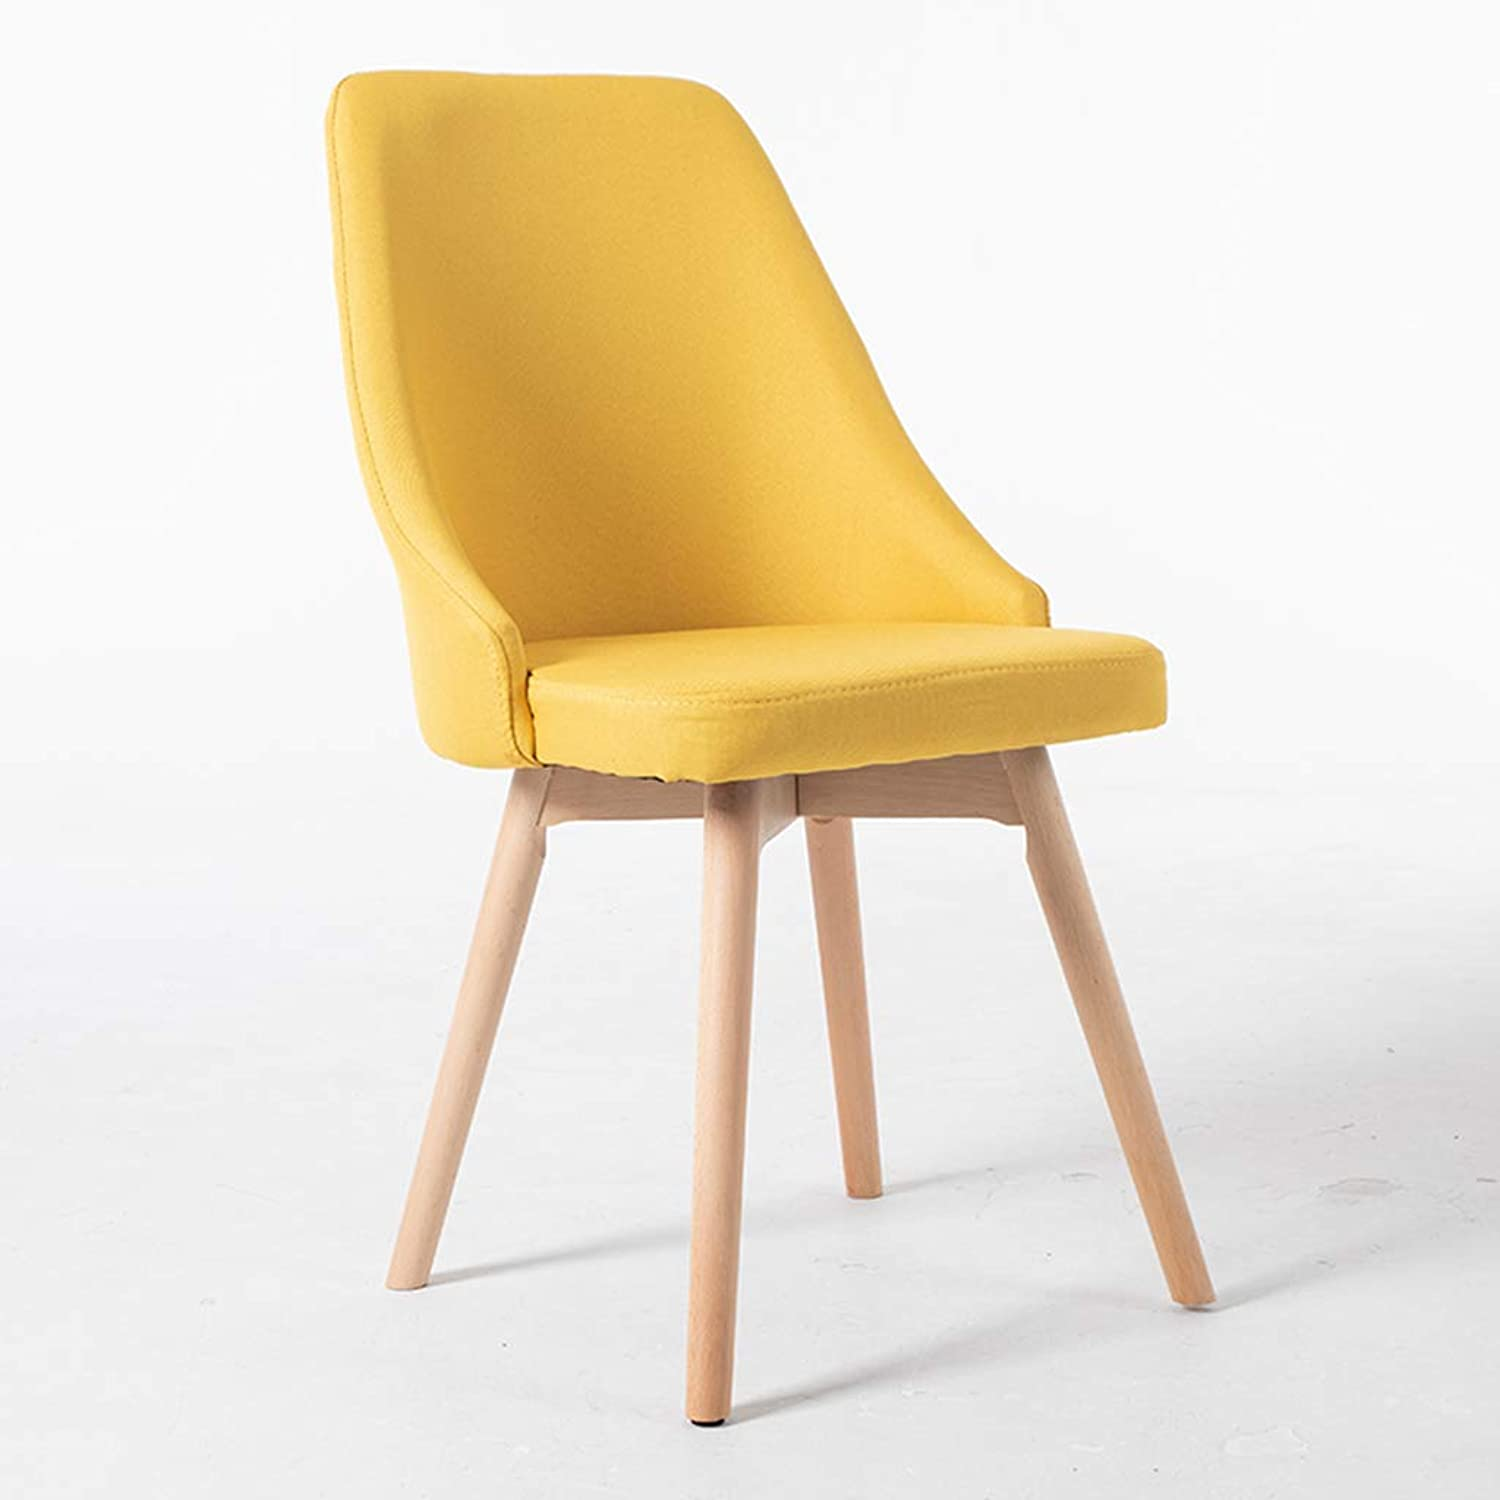 Solid Wood Dining Chair Cloth Makeup Stool Backrest Desk Chair Household Bedroom Dressing Chair Cafe Lounge Chair Multifunction Environmental Predection Armchair,Yellow